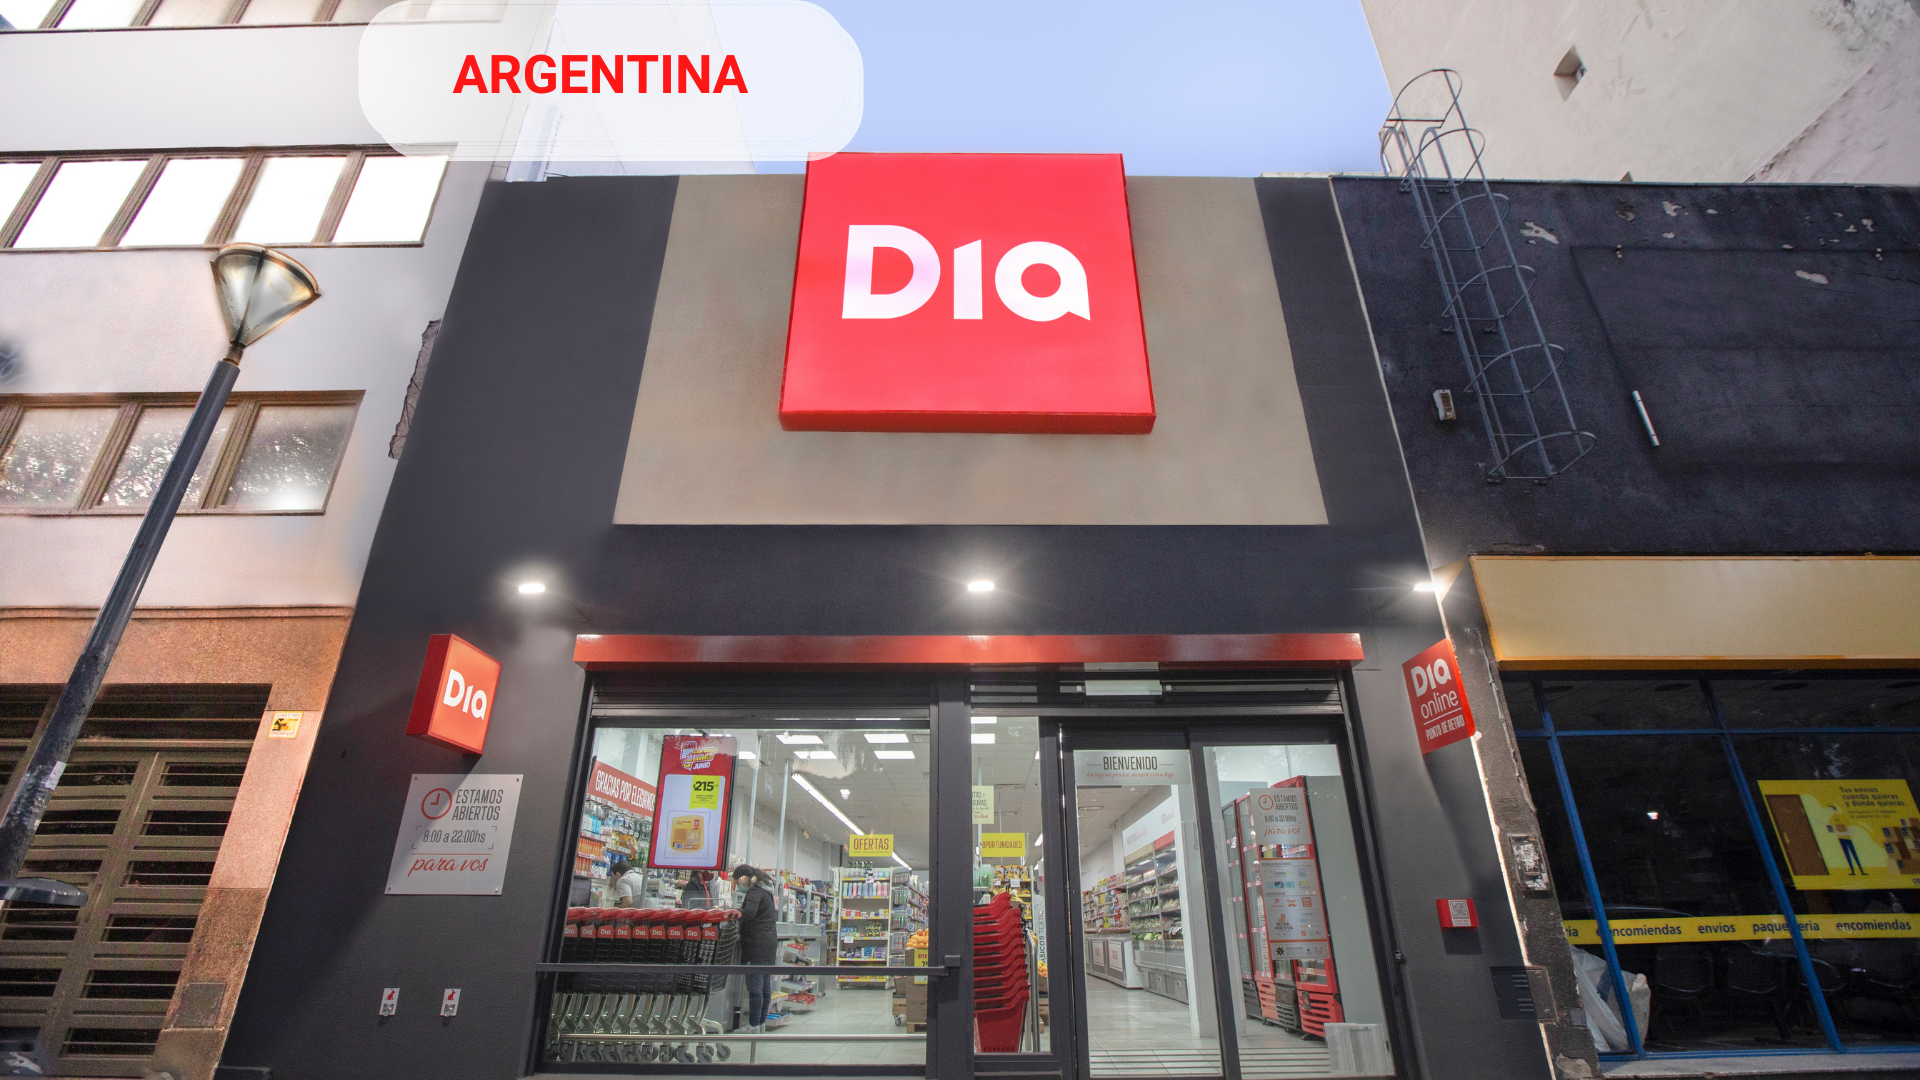 DIA will invest more than USD 100 million over the next three years in its plans for Argentina